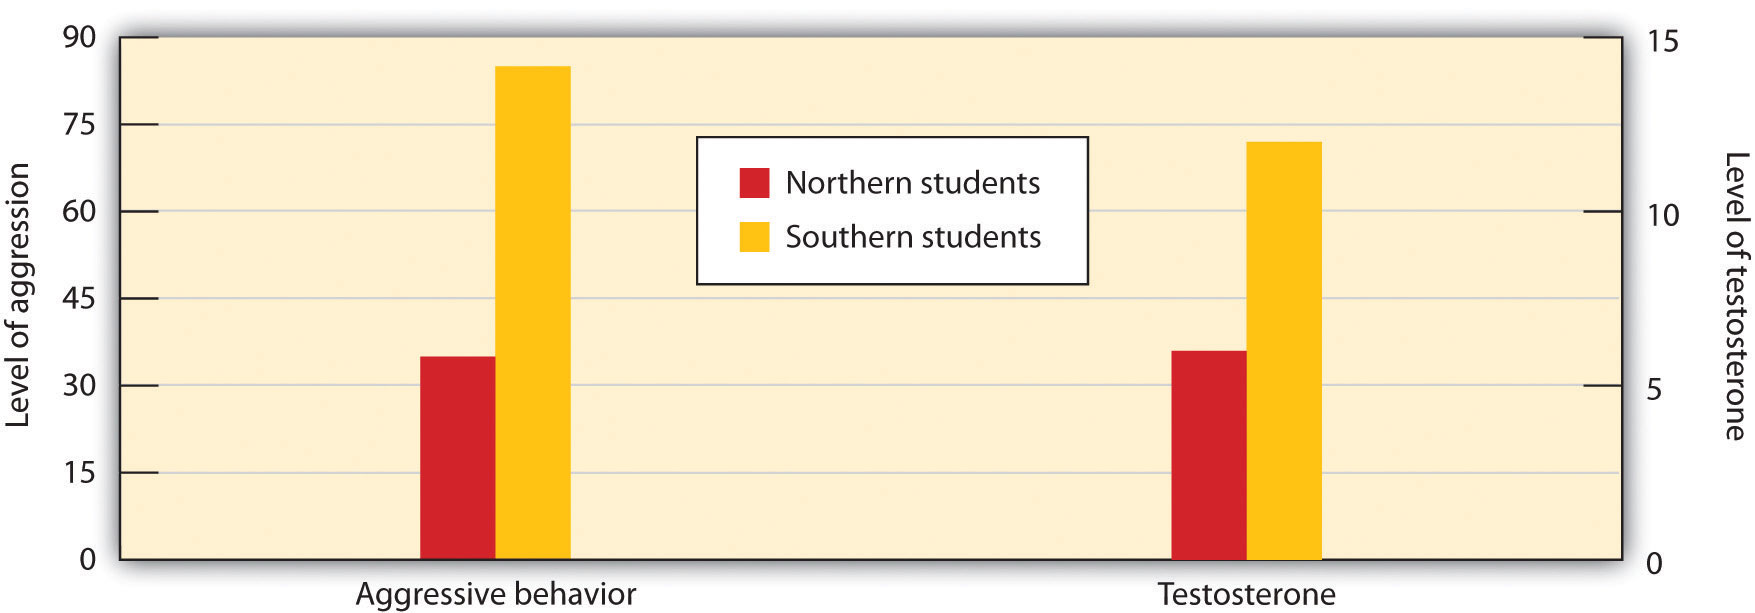 Students from Southern states expressed more anger and had greater levels of testosterone after being insulted than did students from Northern states.